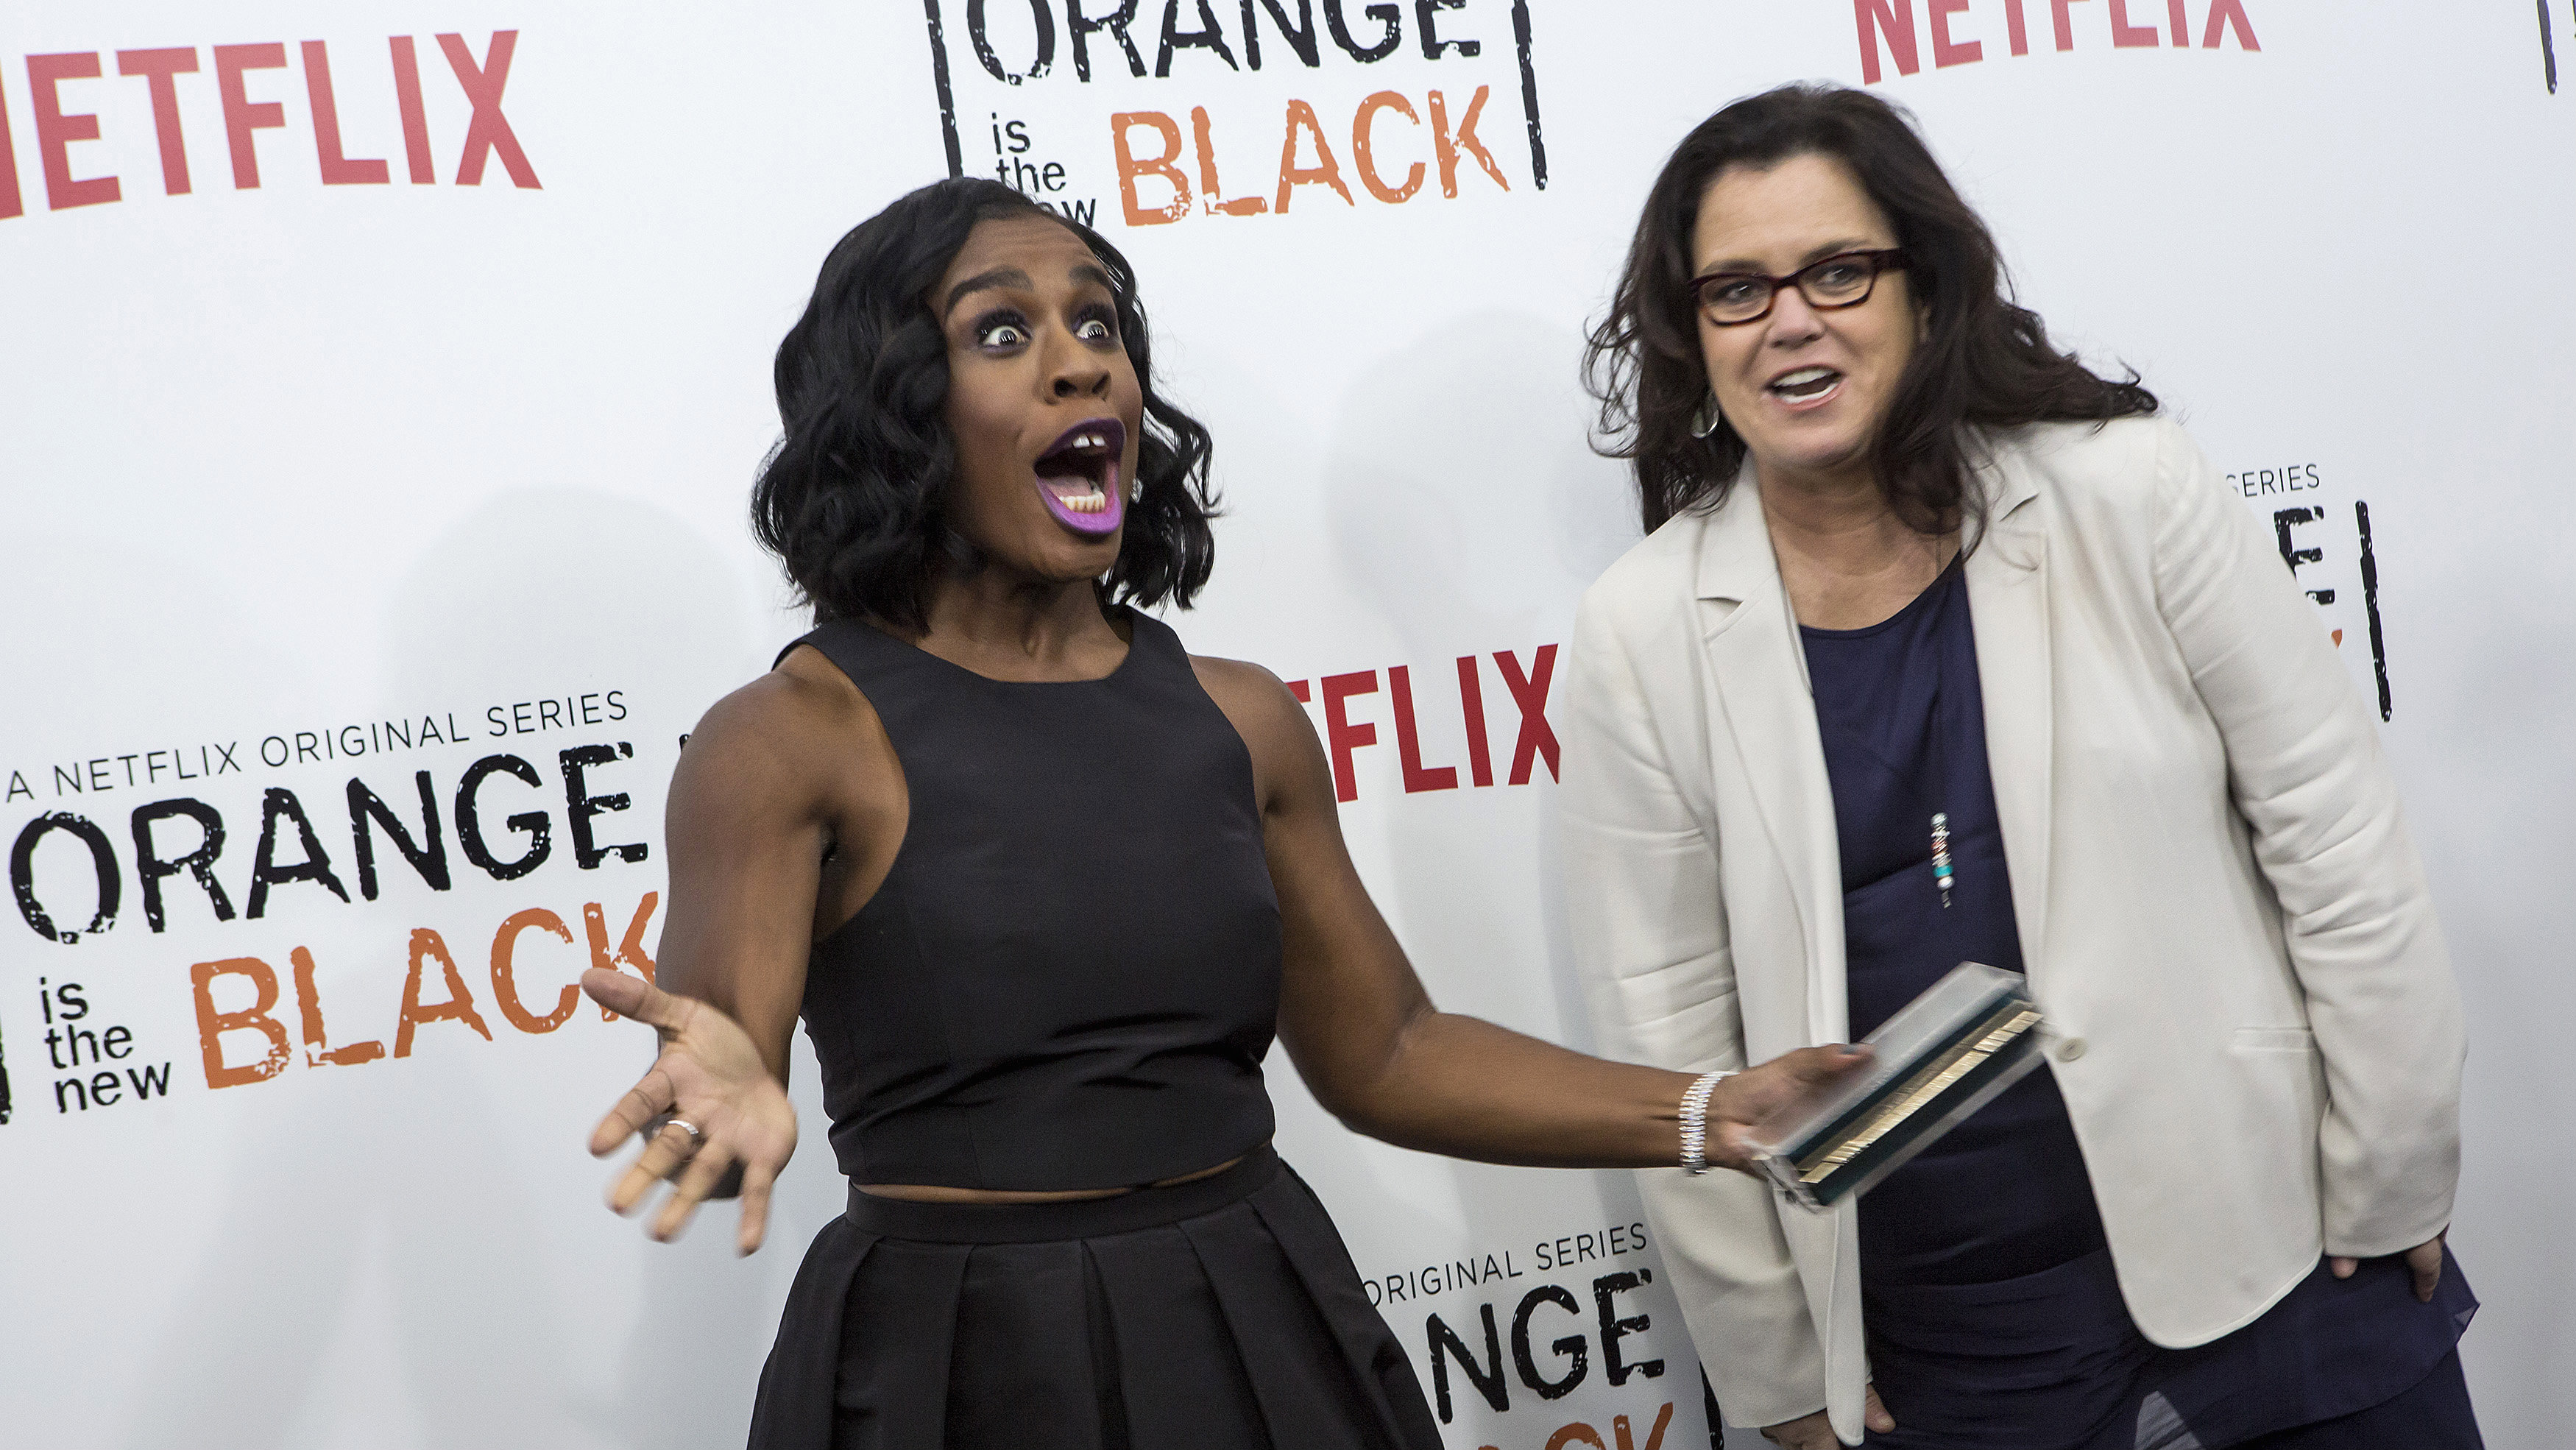 """Cast member Uzo Aduba reacts to seeing comedian Rosie O'Donnell at the season two premiere of """"Orange is the New Black"""" in New York May 15, 2014."""